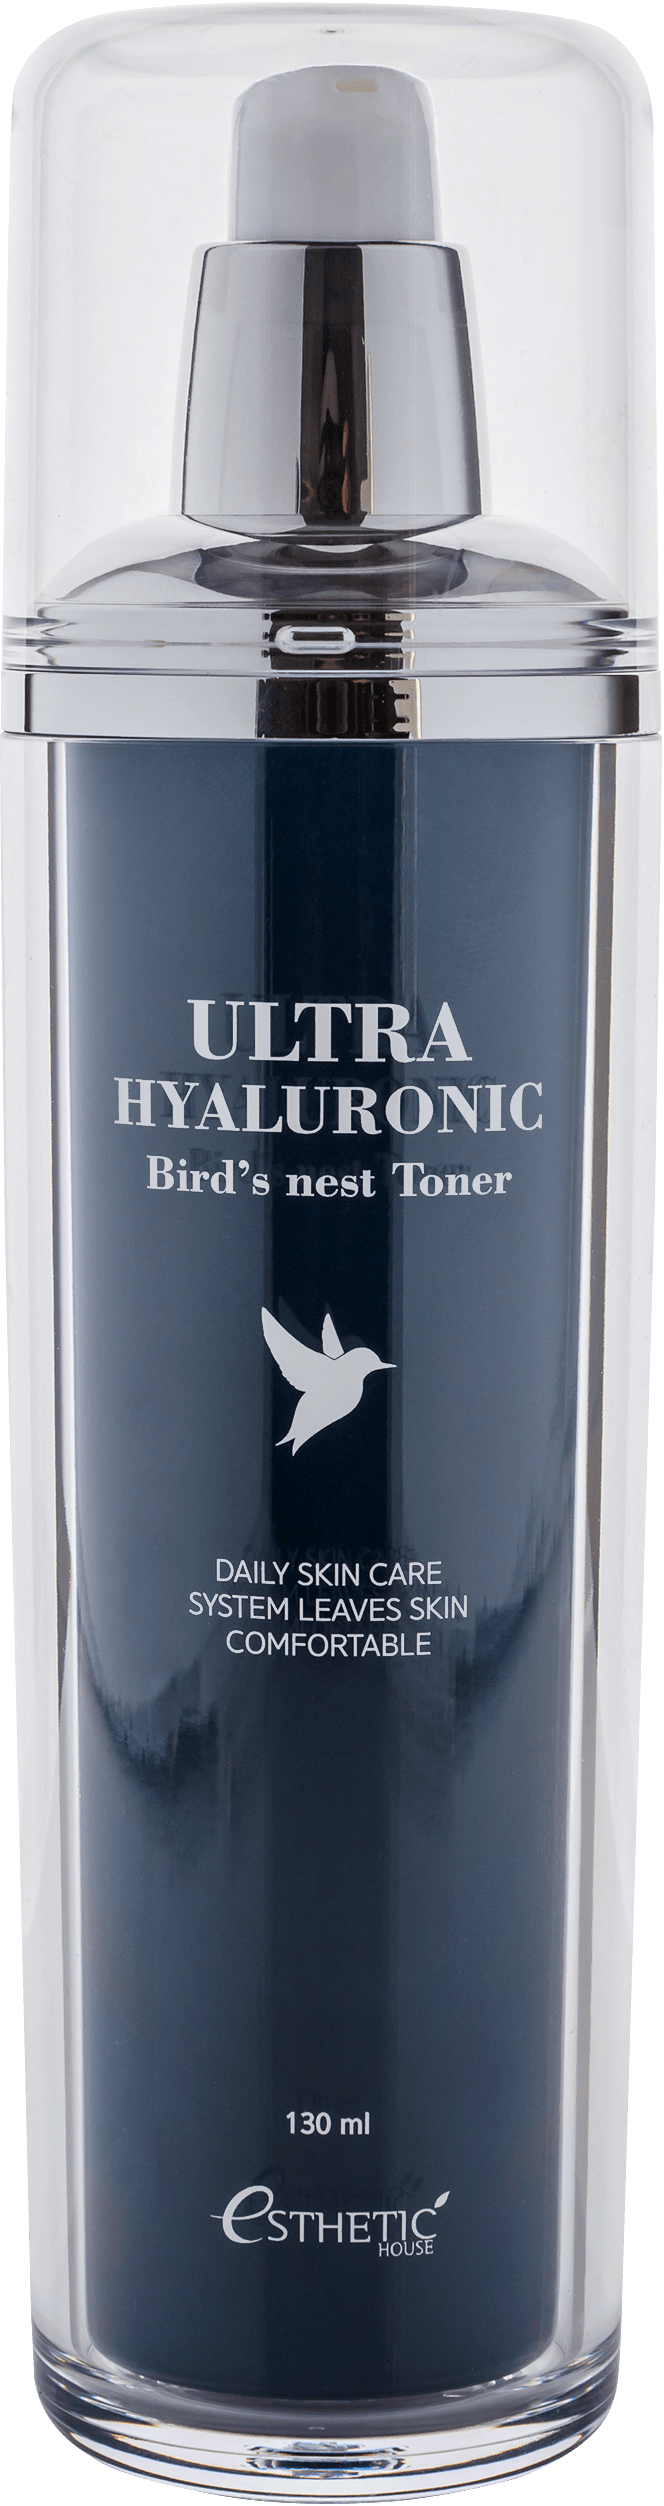 Esthetic House Тонер Ultra Hyaluronic acid Birds nest Toner для Лица Ласточка Гиалурон, 130 мл